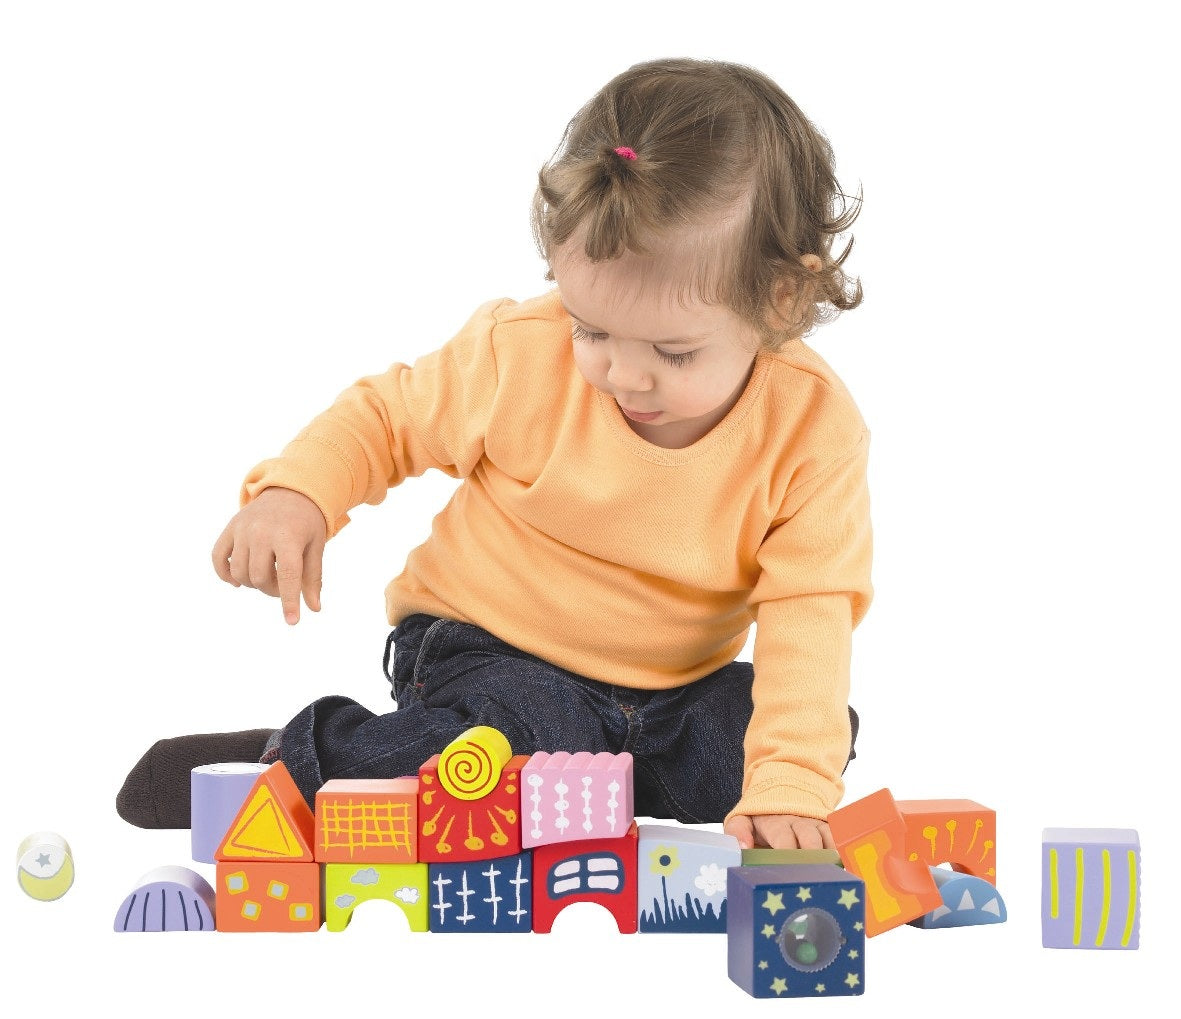 Human, What Are The Best Kind Of Toys For Encouraging Child Development